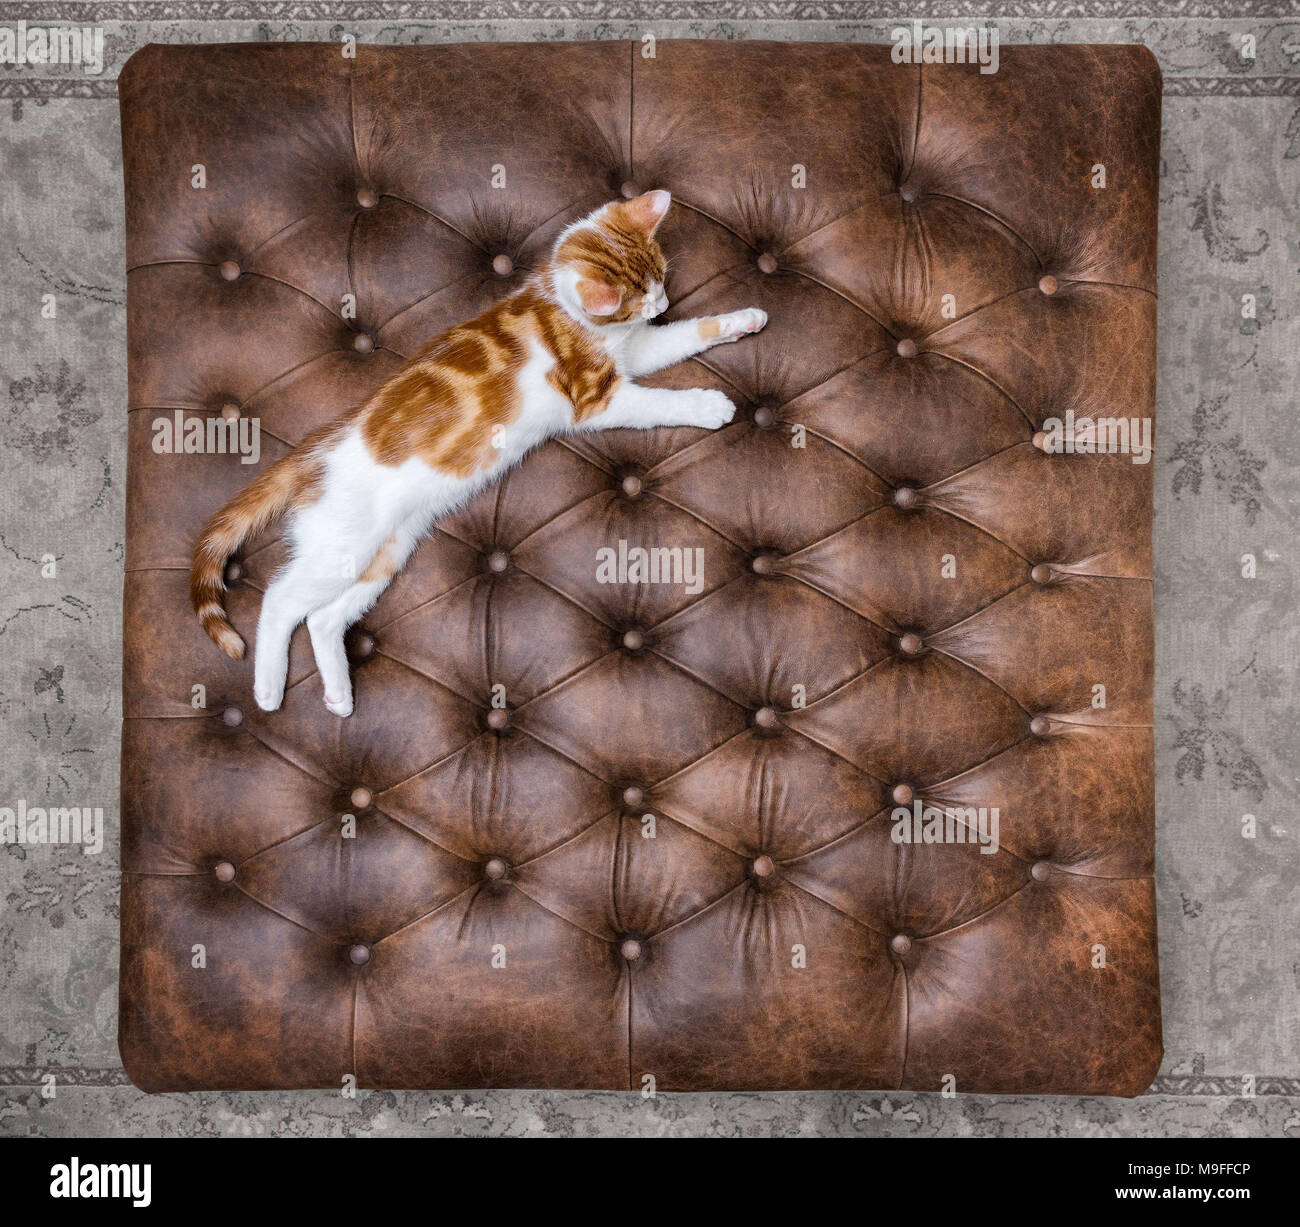 Looking down at cute red kitten sleeping on a luxurious buttoned leather ottoman - Stock Image